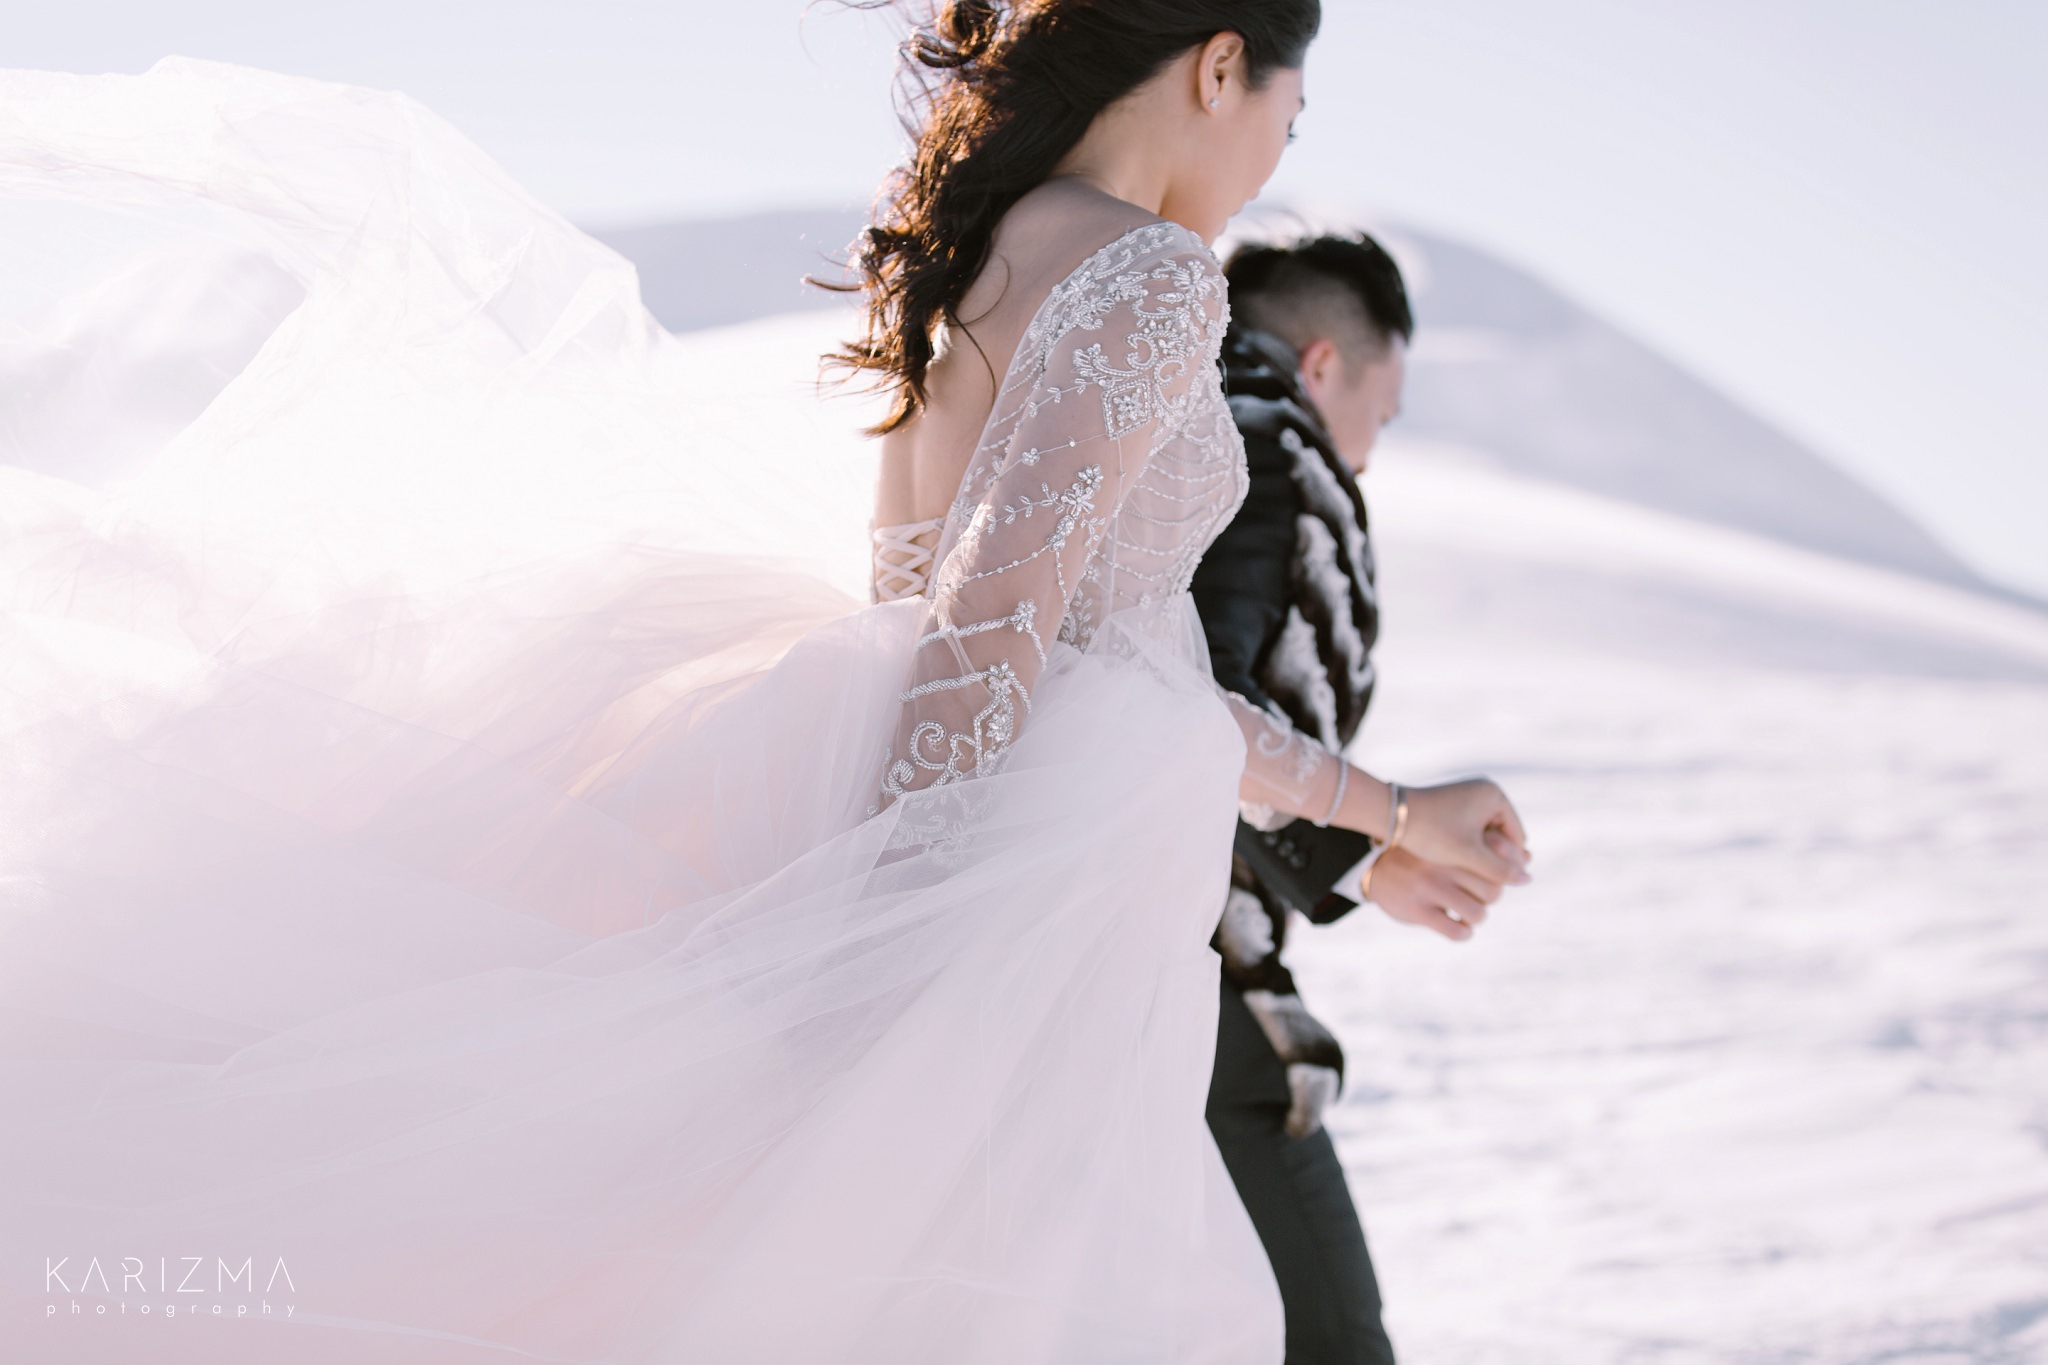 Close-up portrait of the bride and groom in Whistler mountains